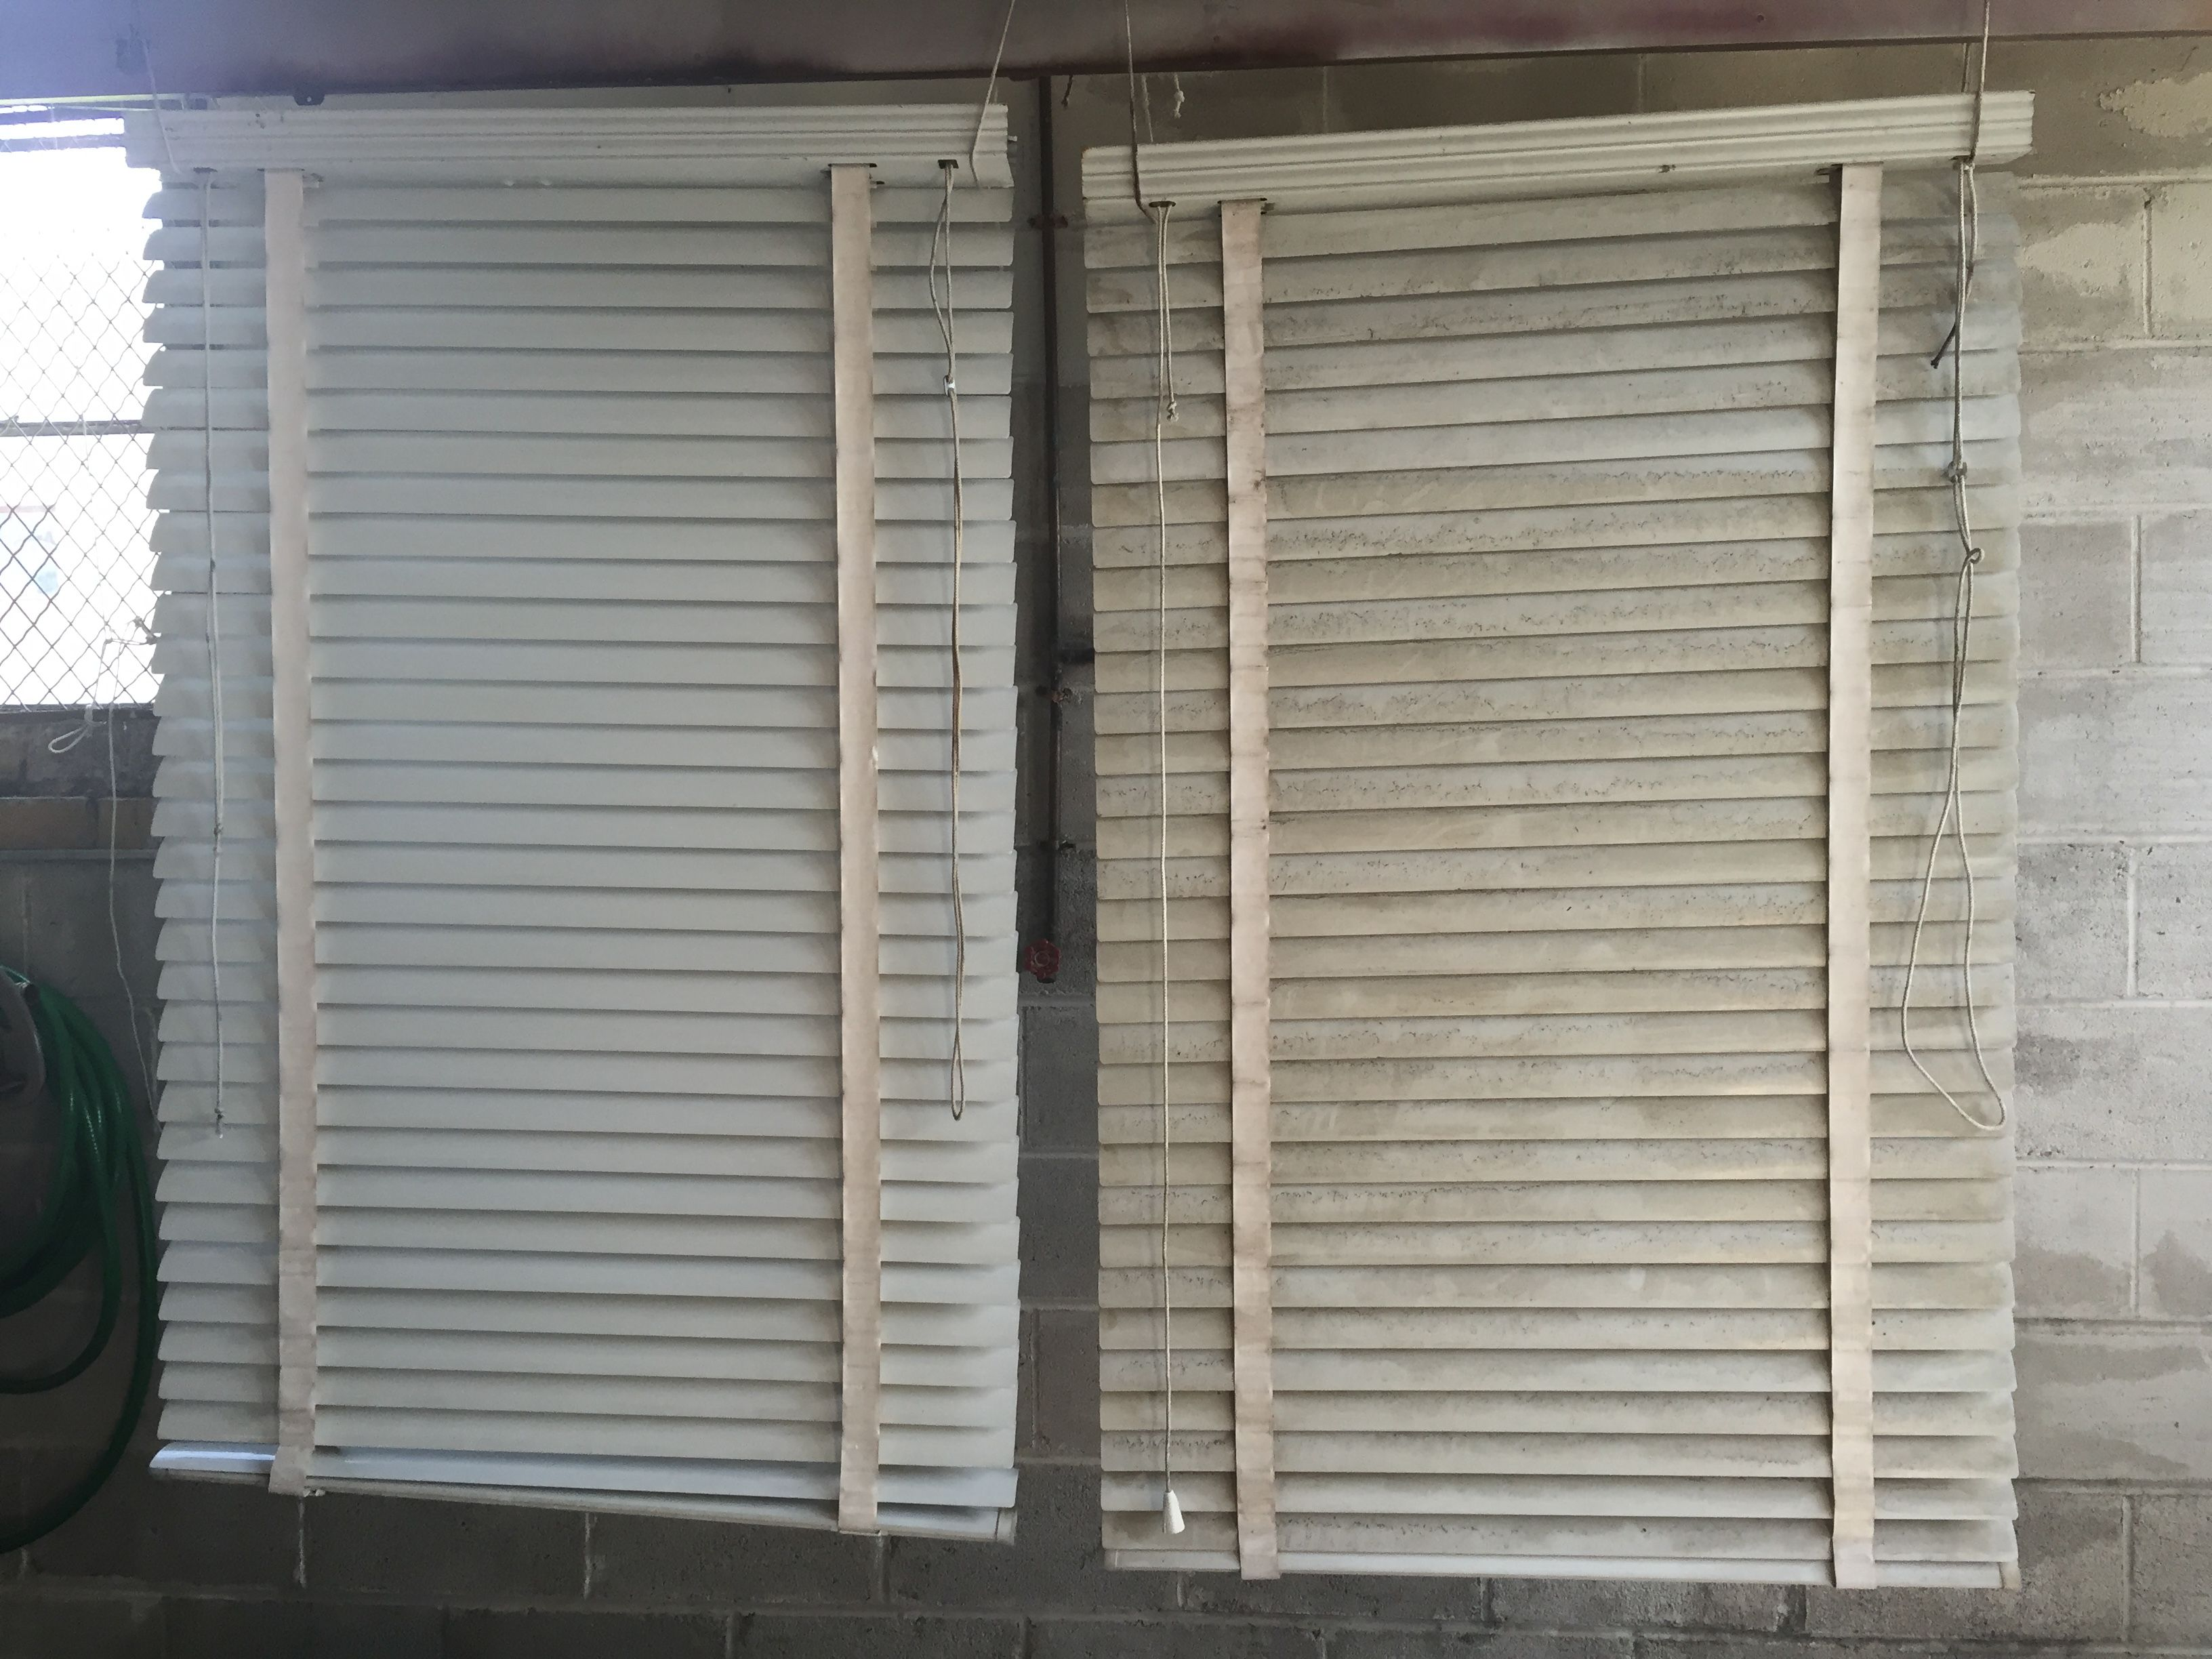 dry clean cleaning all metals to call and blindsupslightly washable sure cleaners can next if but your oa shades wood make for blinds keeping tips ahead are blog sometimes boutique day not handle yours